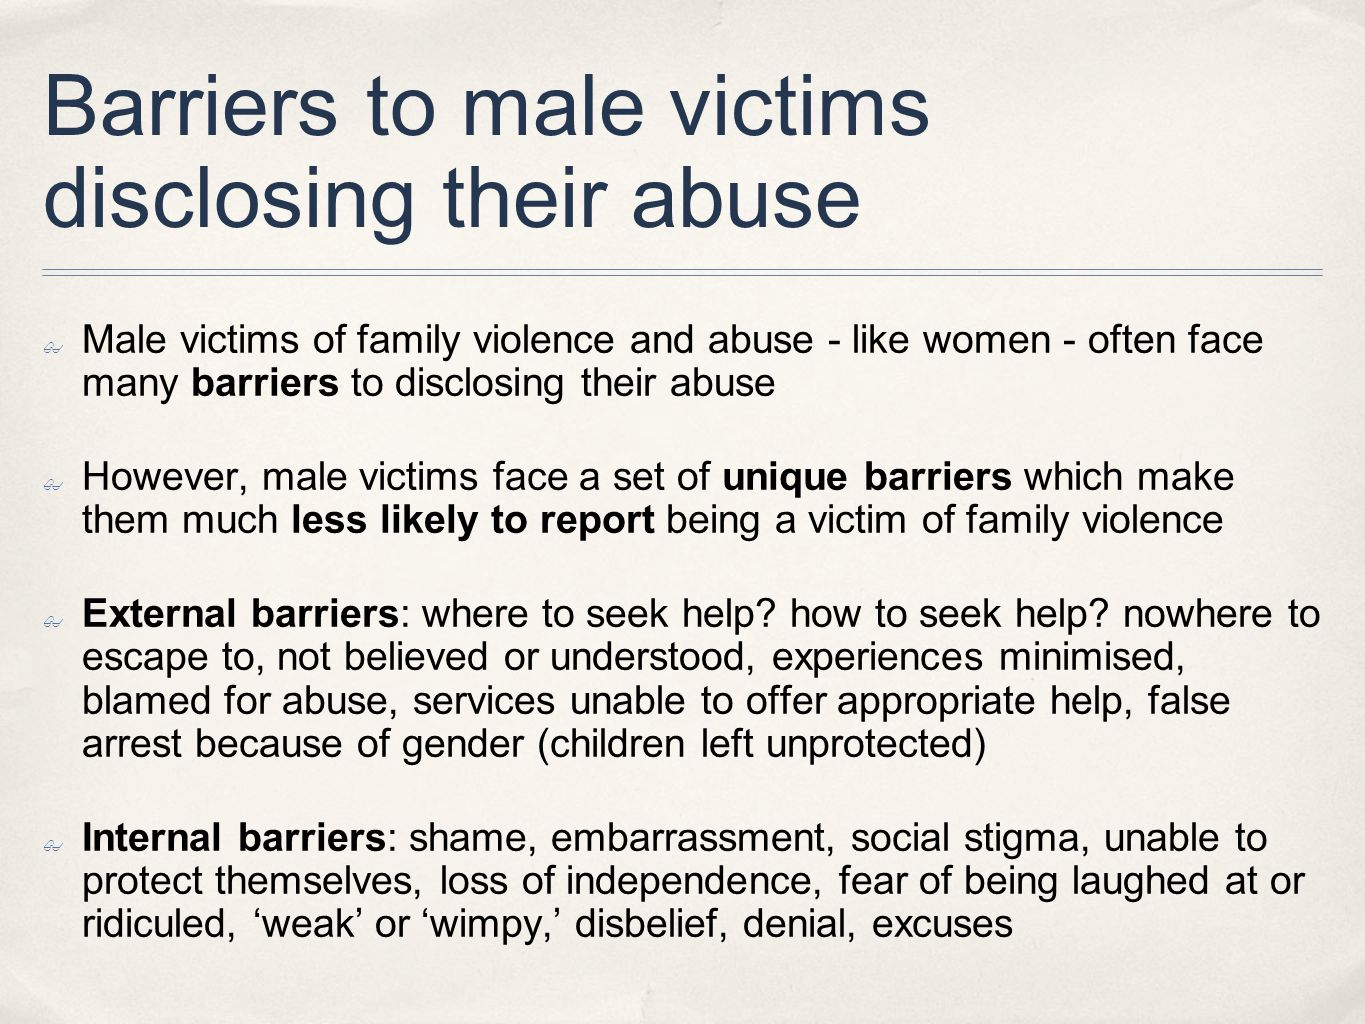 Barriers to male victims disclosing their abuse